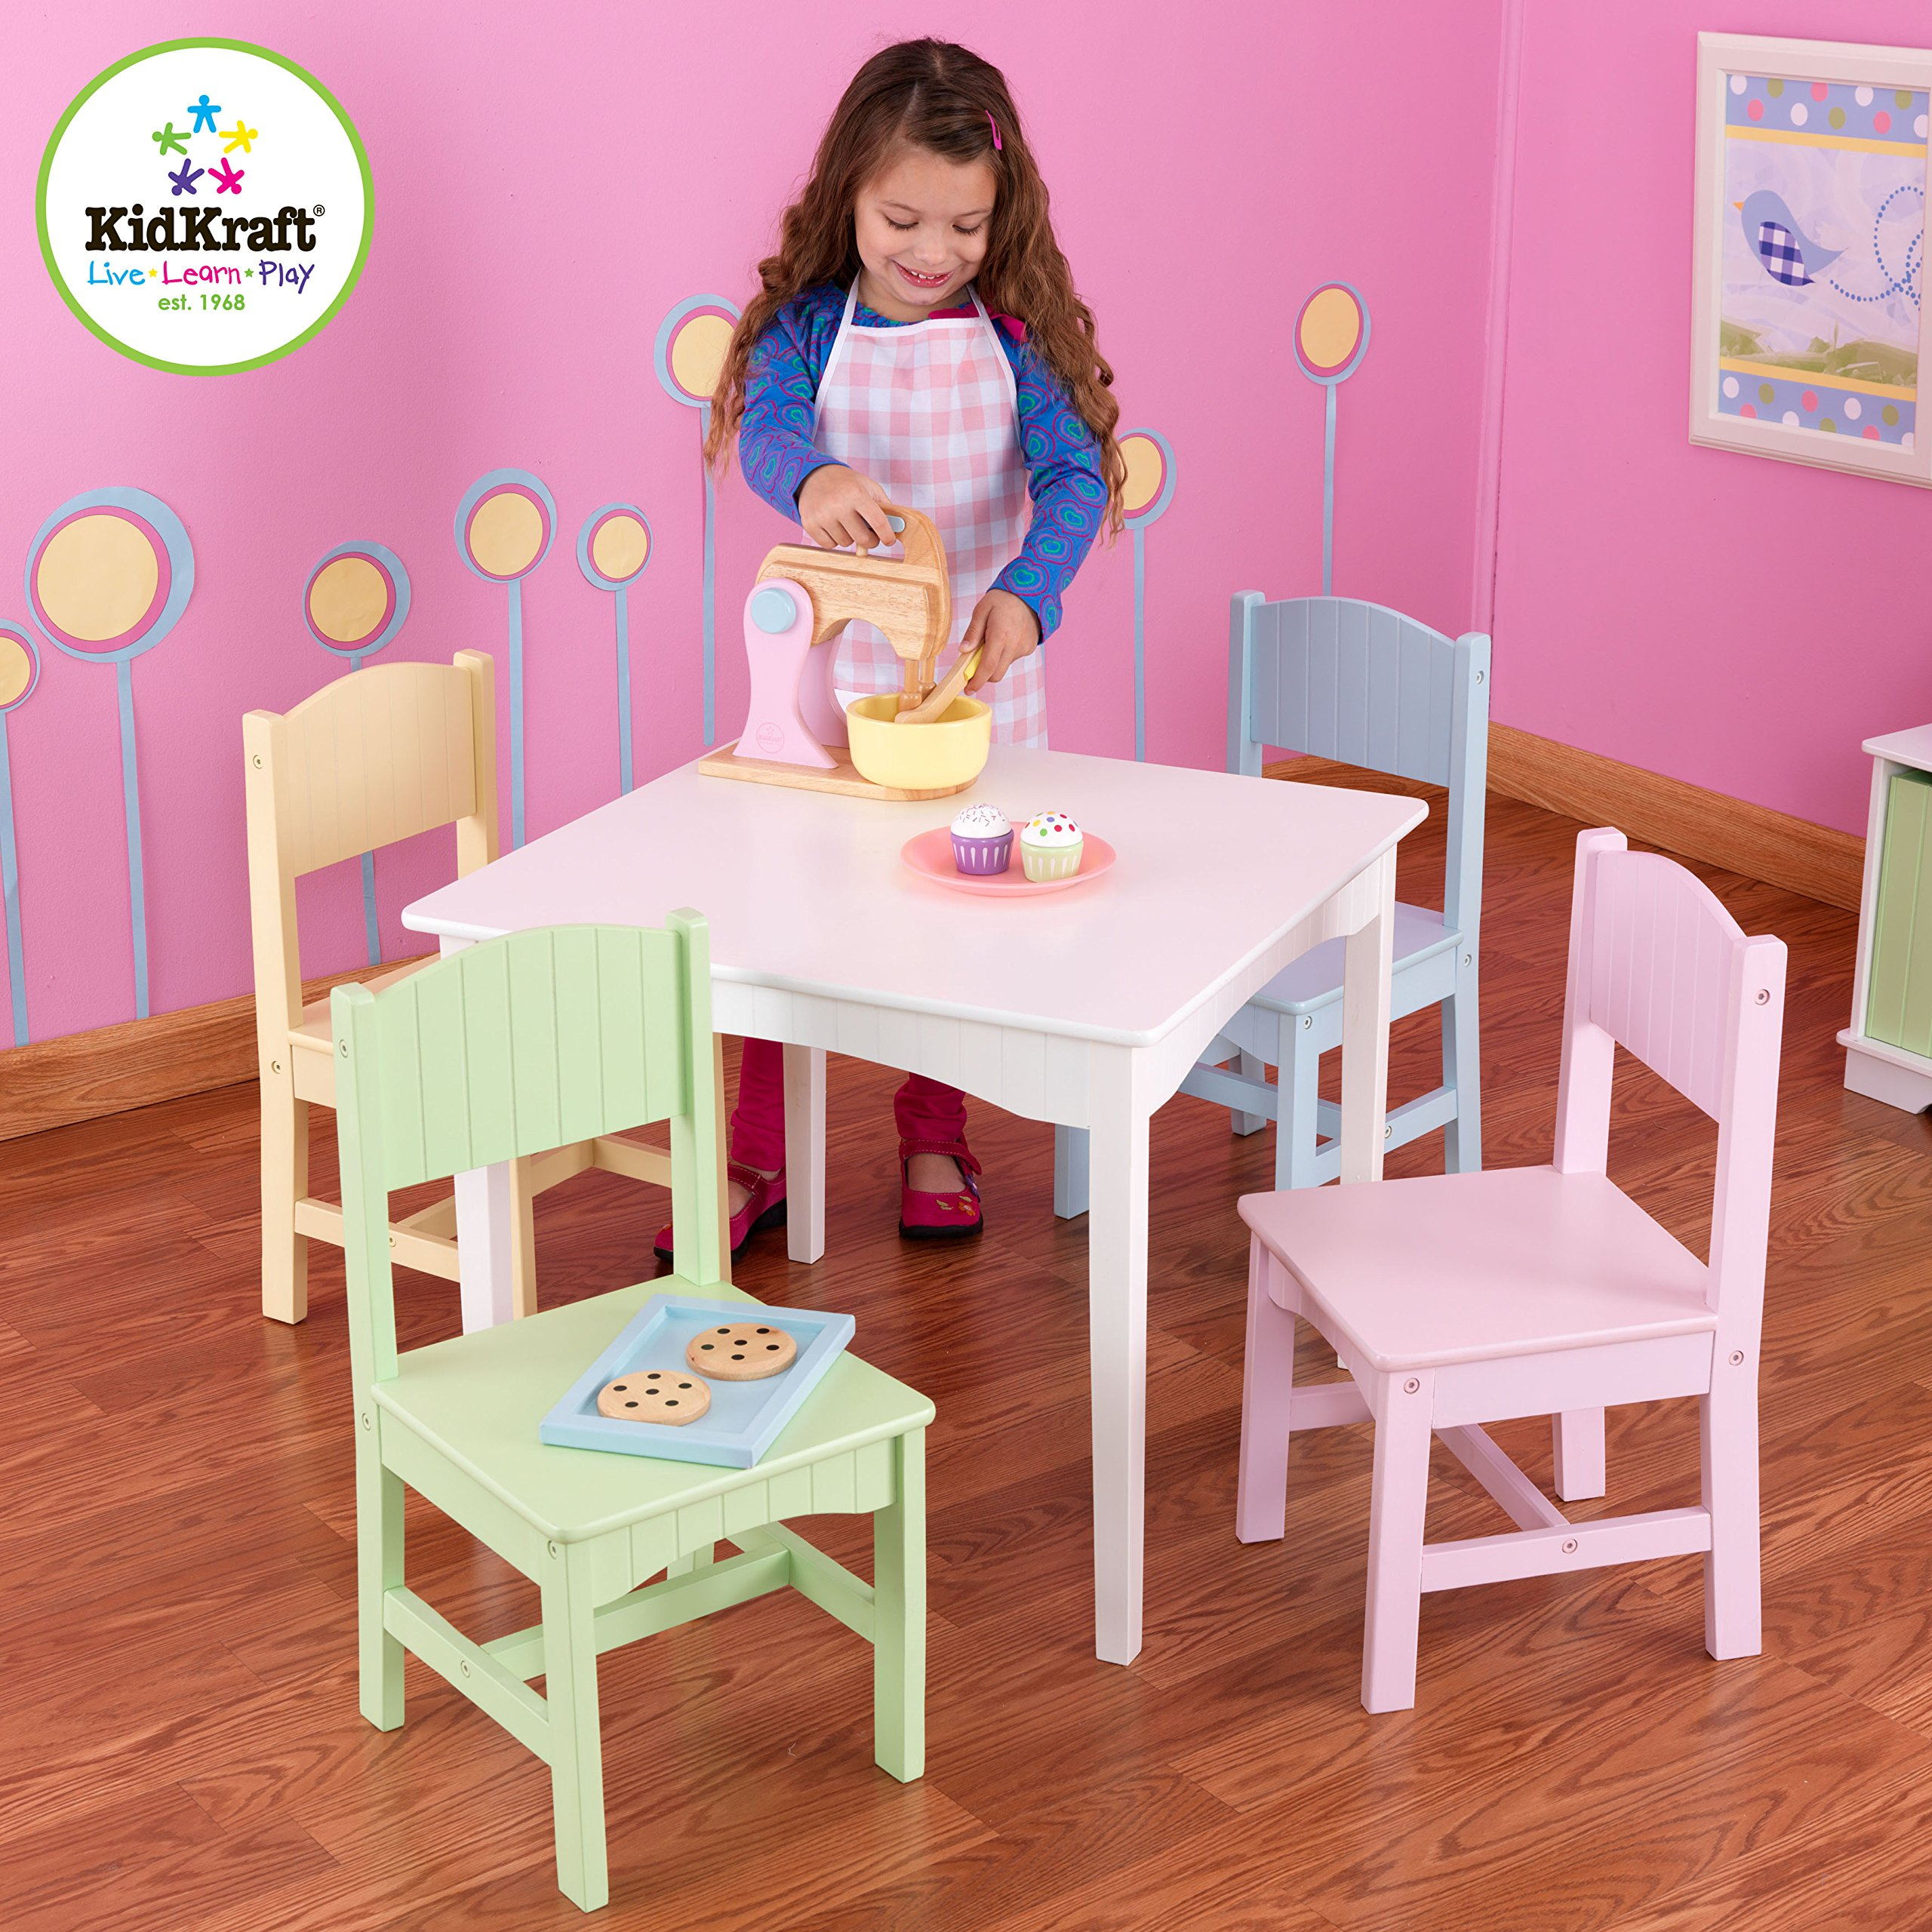 KidKraft Nantucket Kid's Wooden Table & 4 Chairs Set with Wainscoting Detail - Pastel by KidKraft